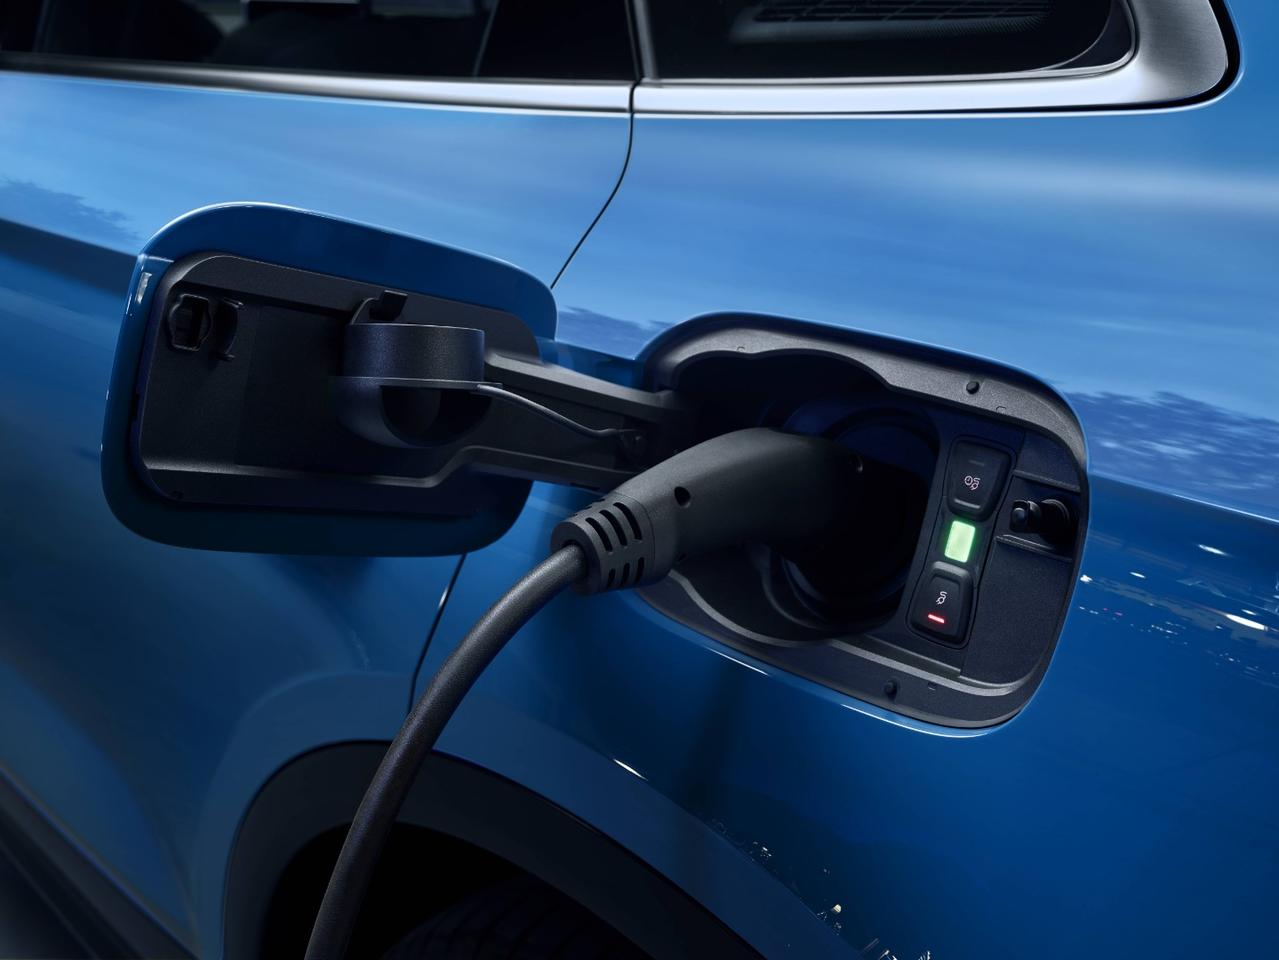 The Audi Q5 55 TFSI e Quattro charges in around six hours overnight off a wall charger